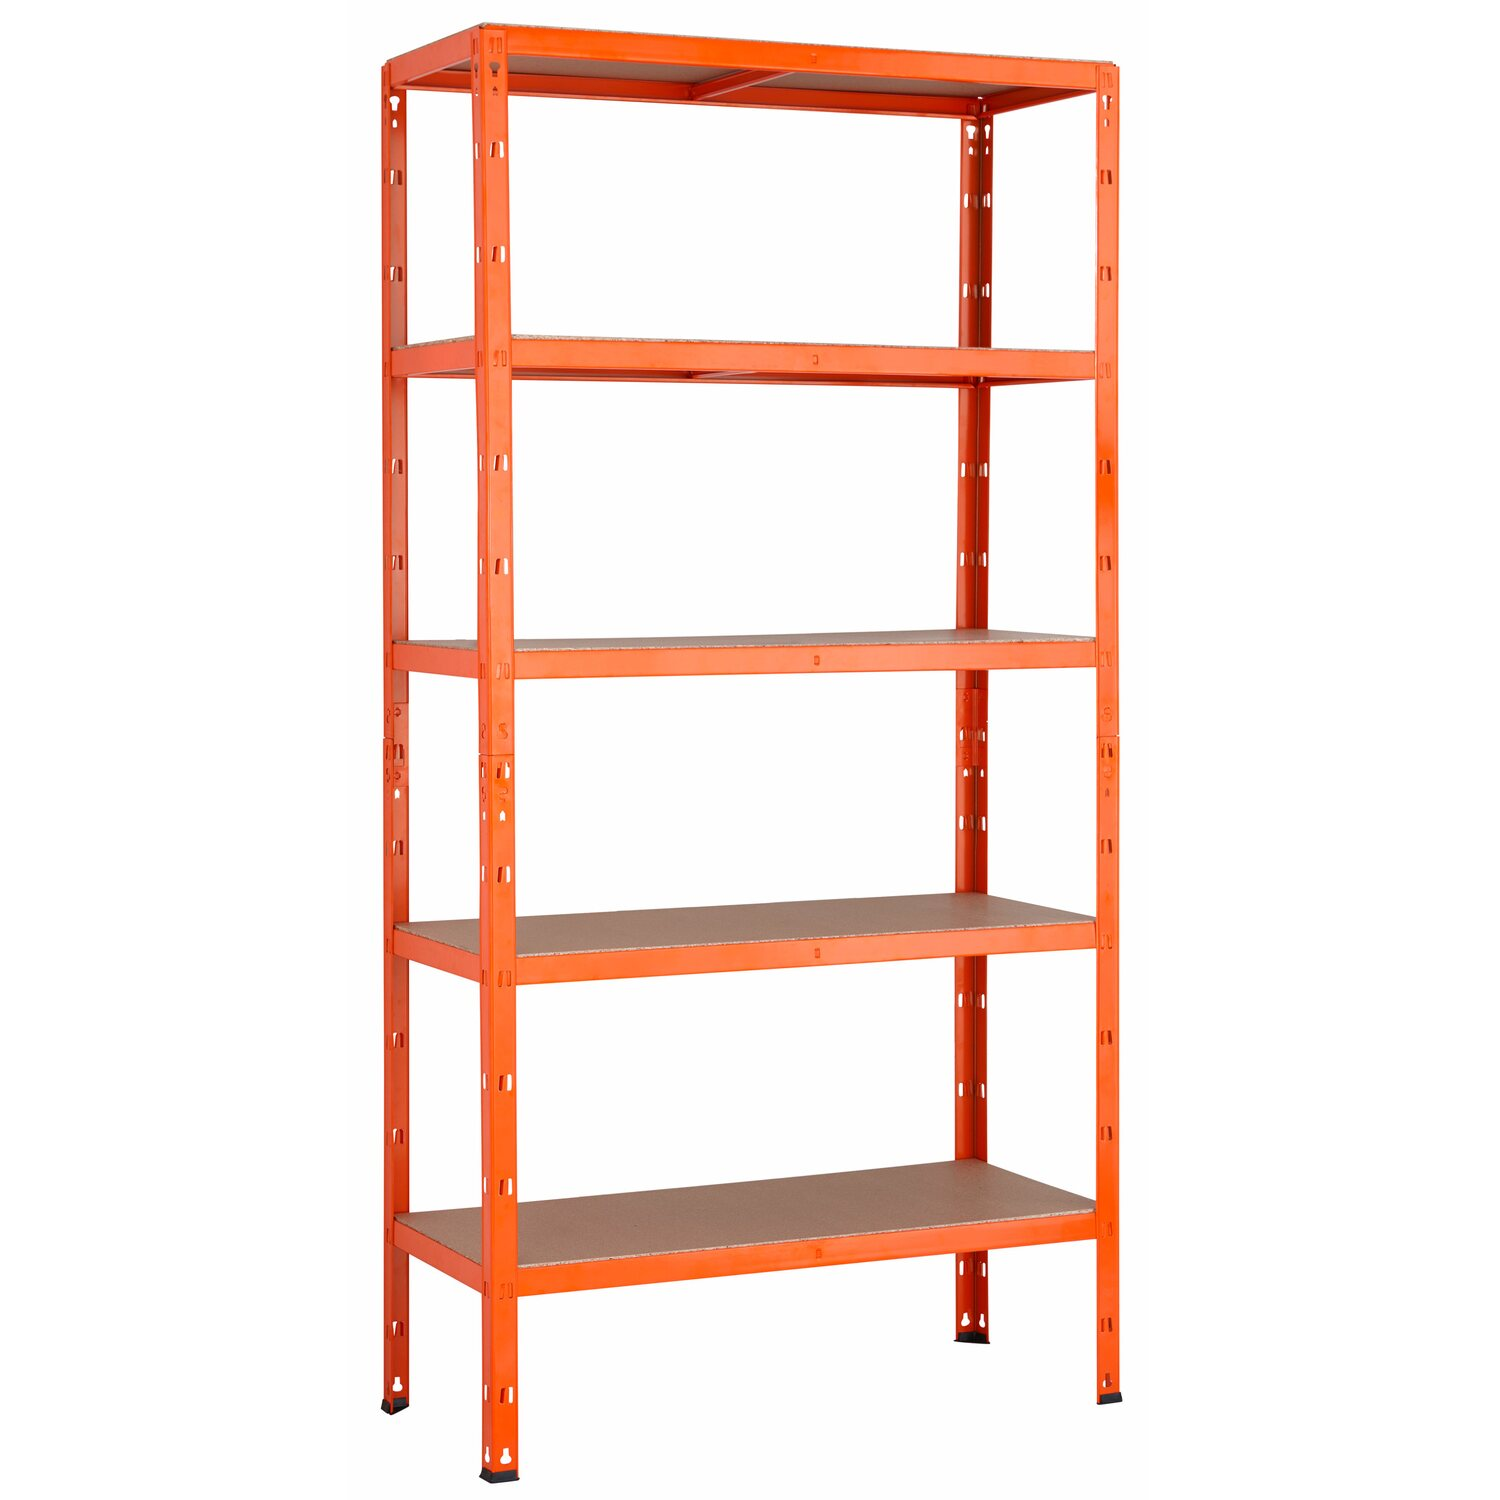 metall schwerlast steckregal orange 180 cm x 90 cm x 40 cm. Black Bedroom Furniture Sets. Home Design Ideas